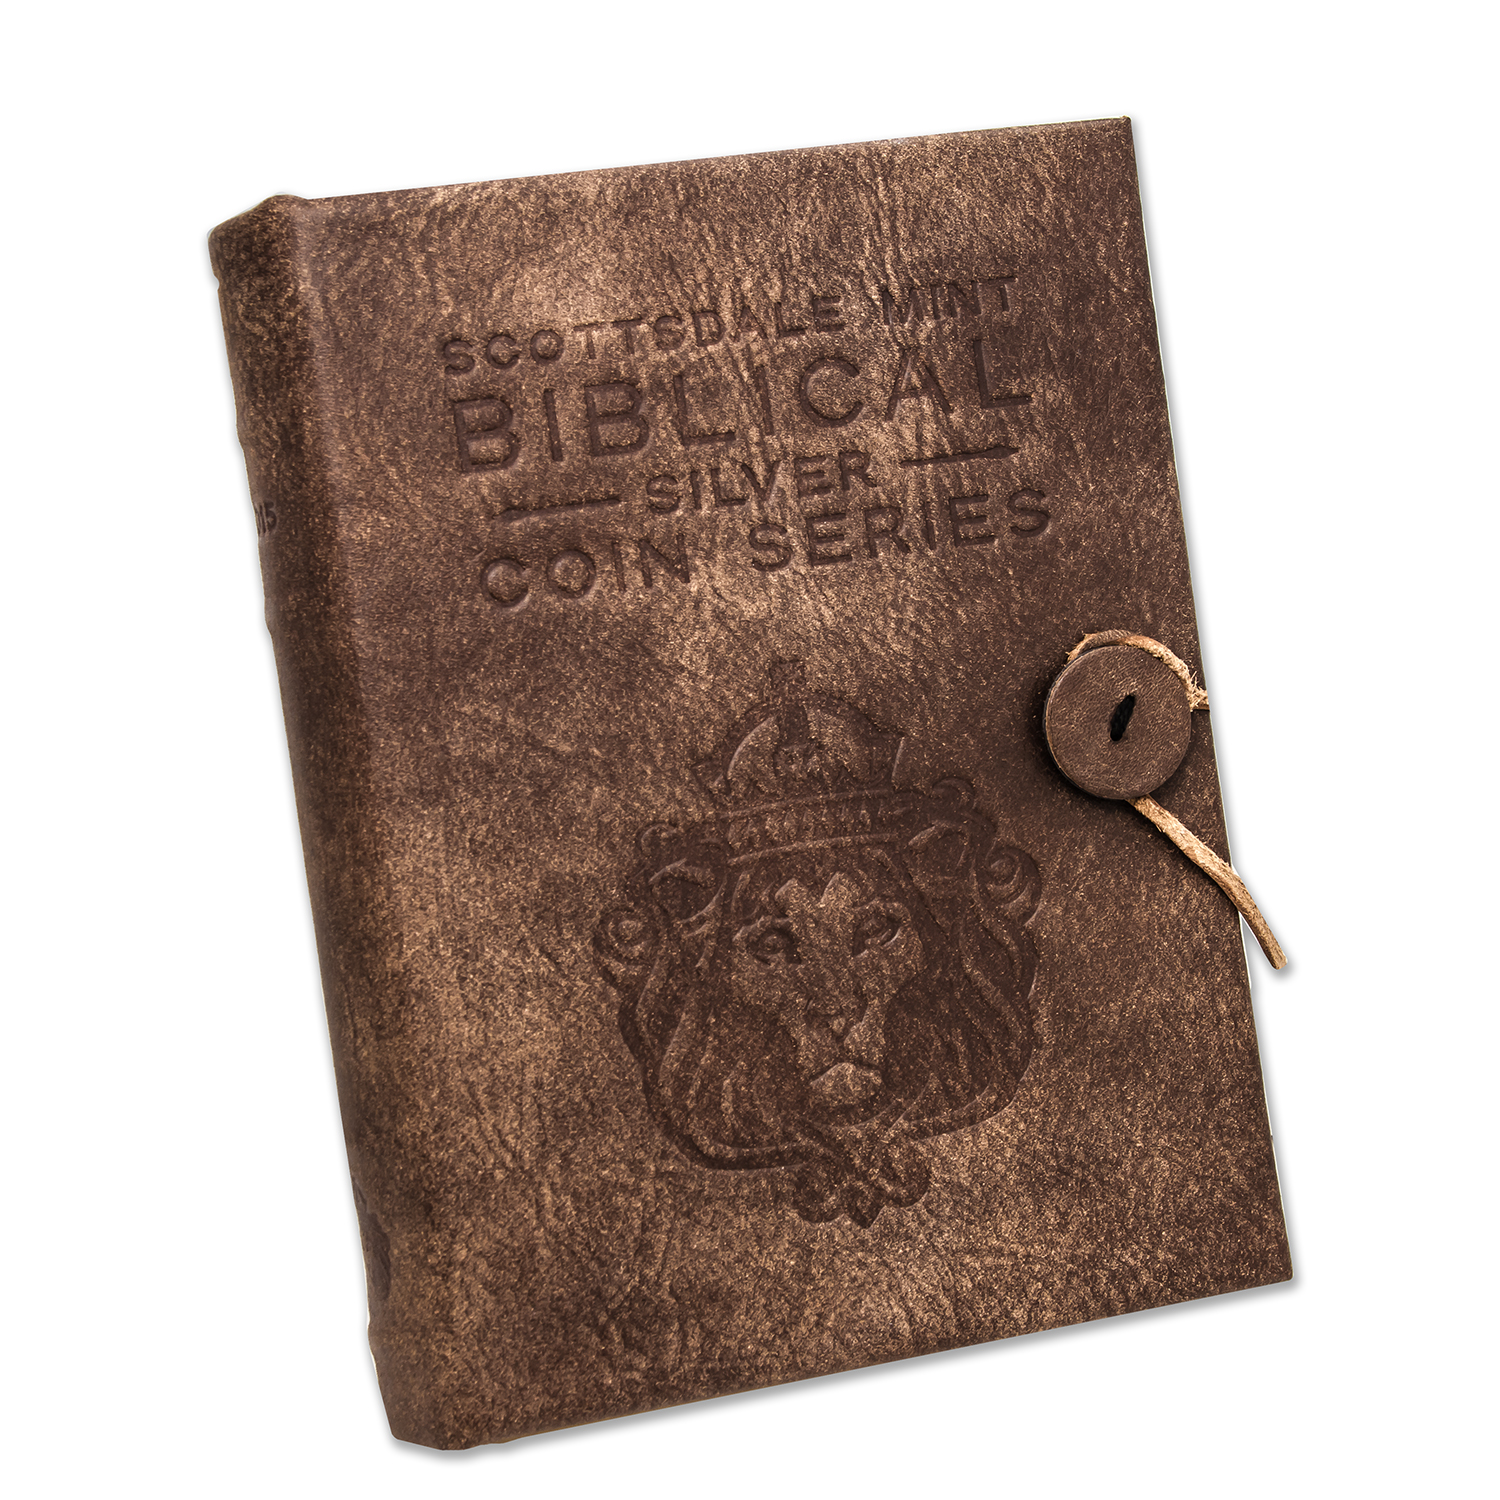 Leather 6-Coin Collector's Album - 2015 Biblical Series